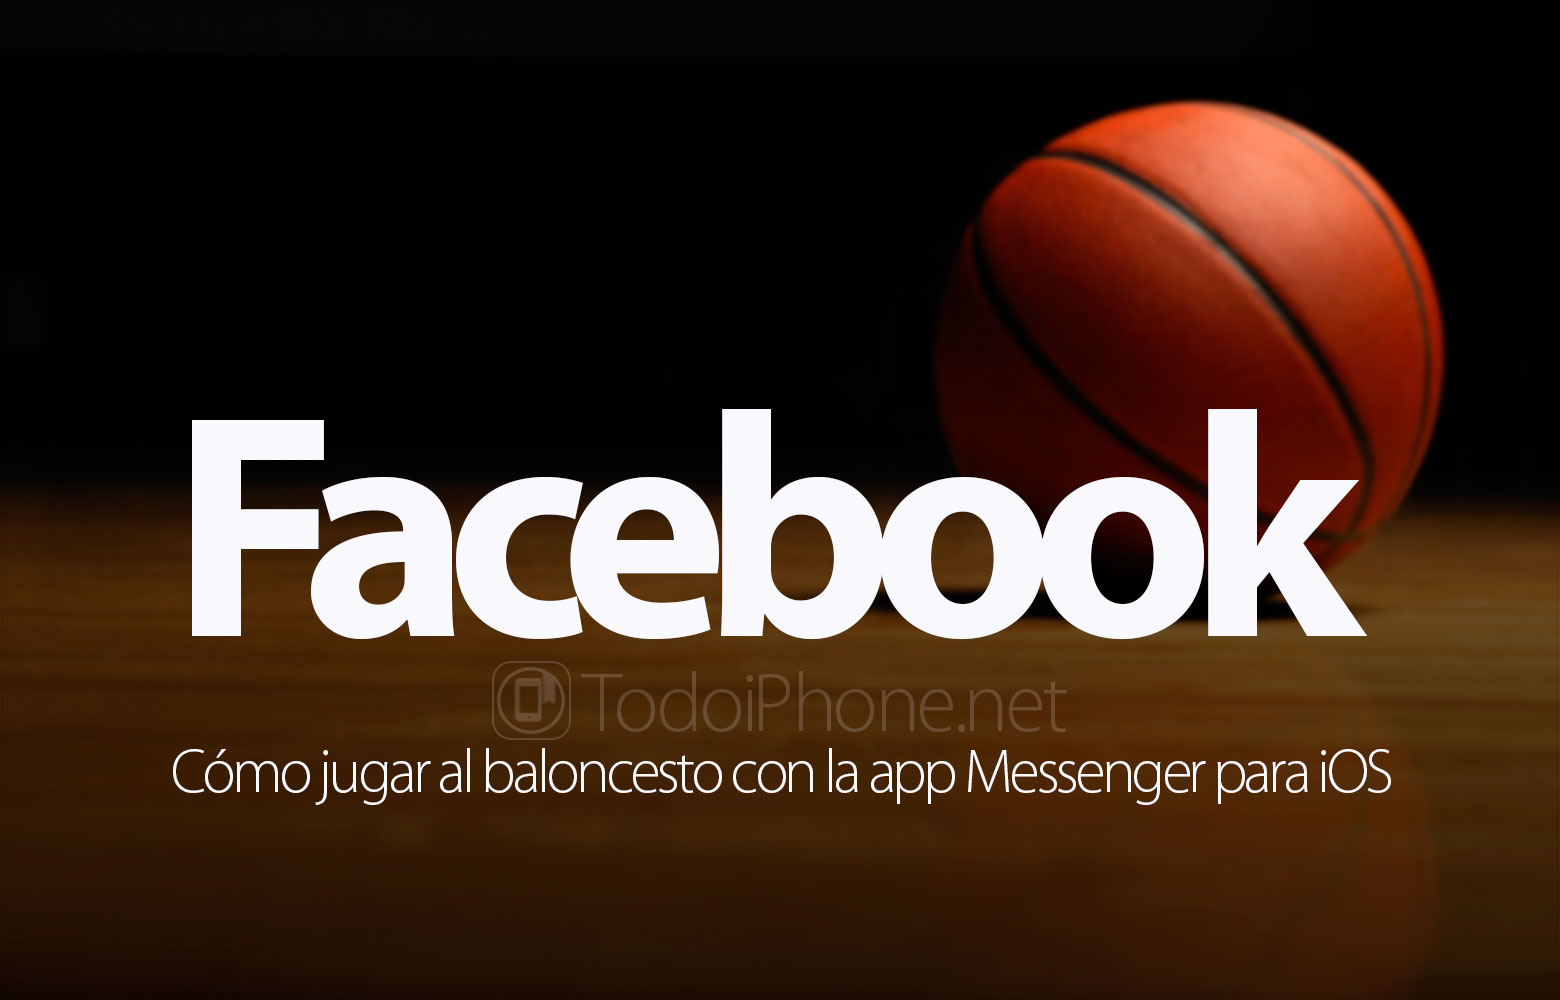 como-jugar-balonces-facebook-messenger-ios